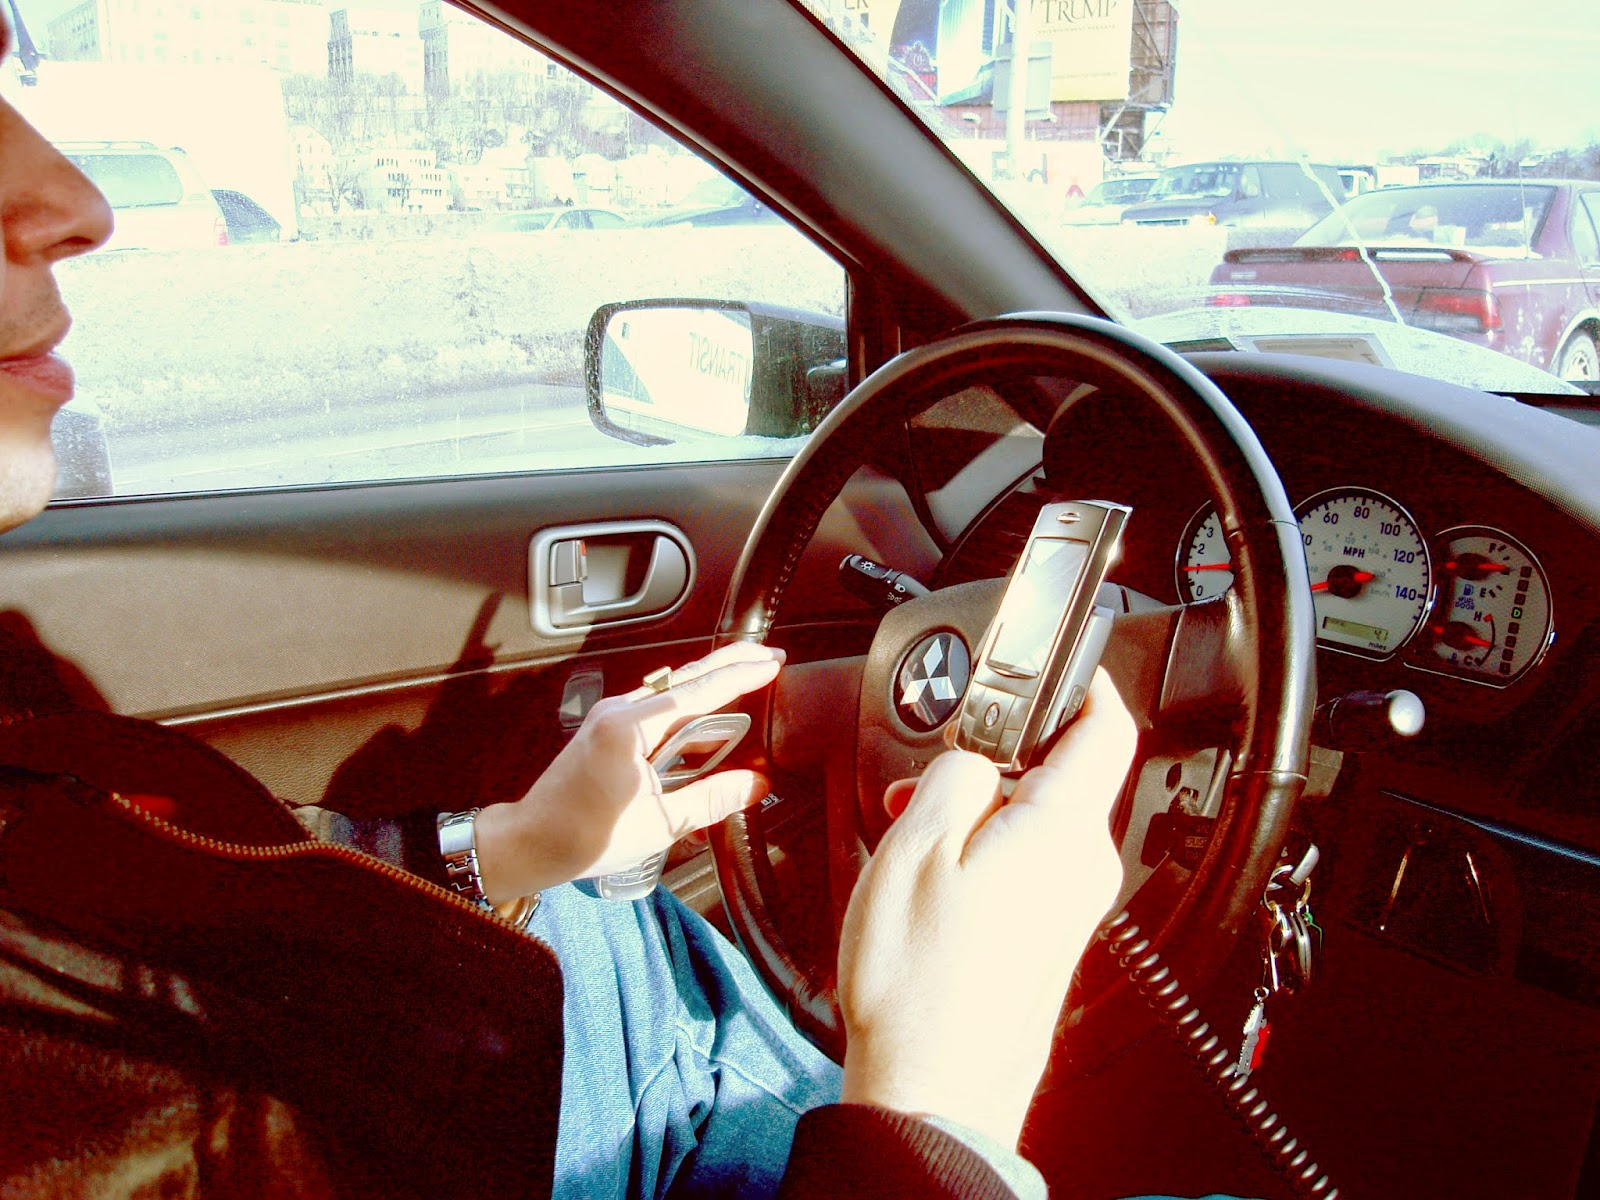 Cellular phone Use While Driving Statistics